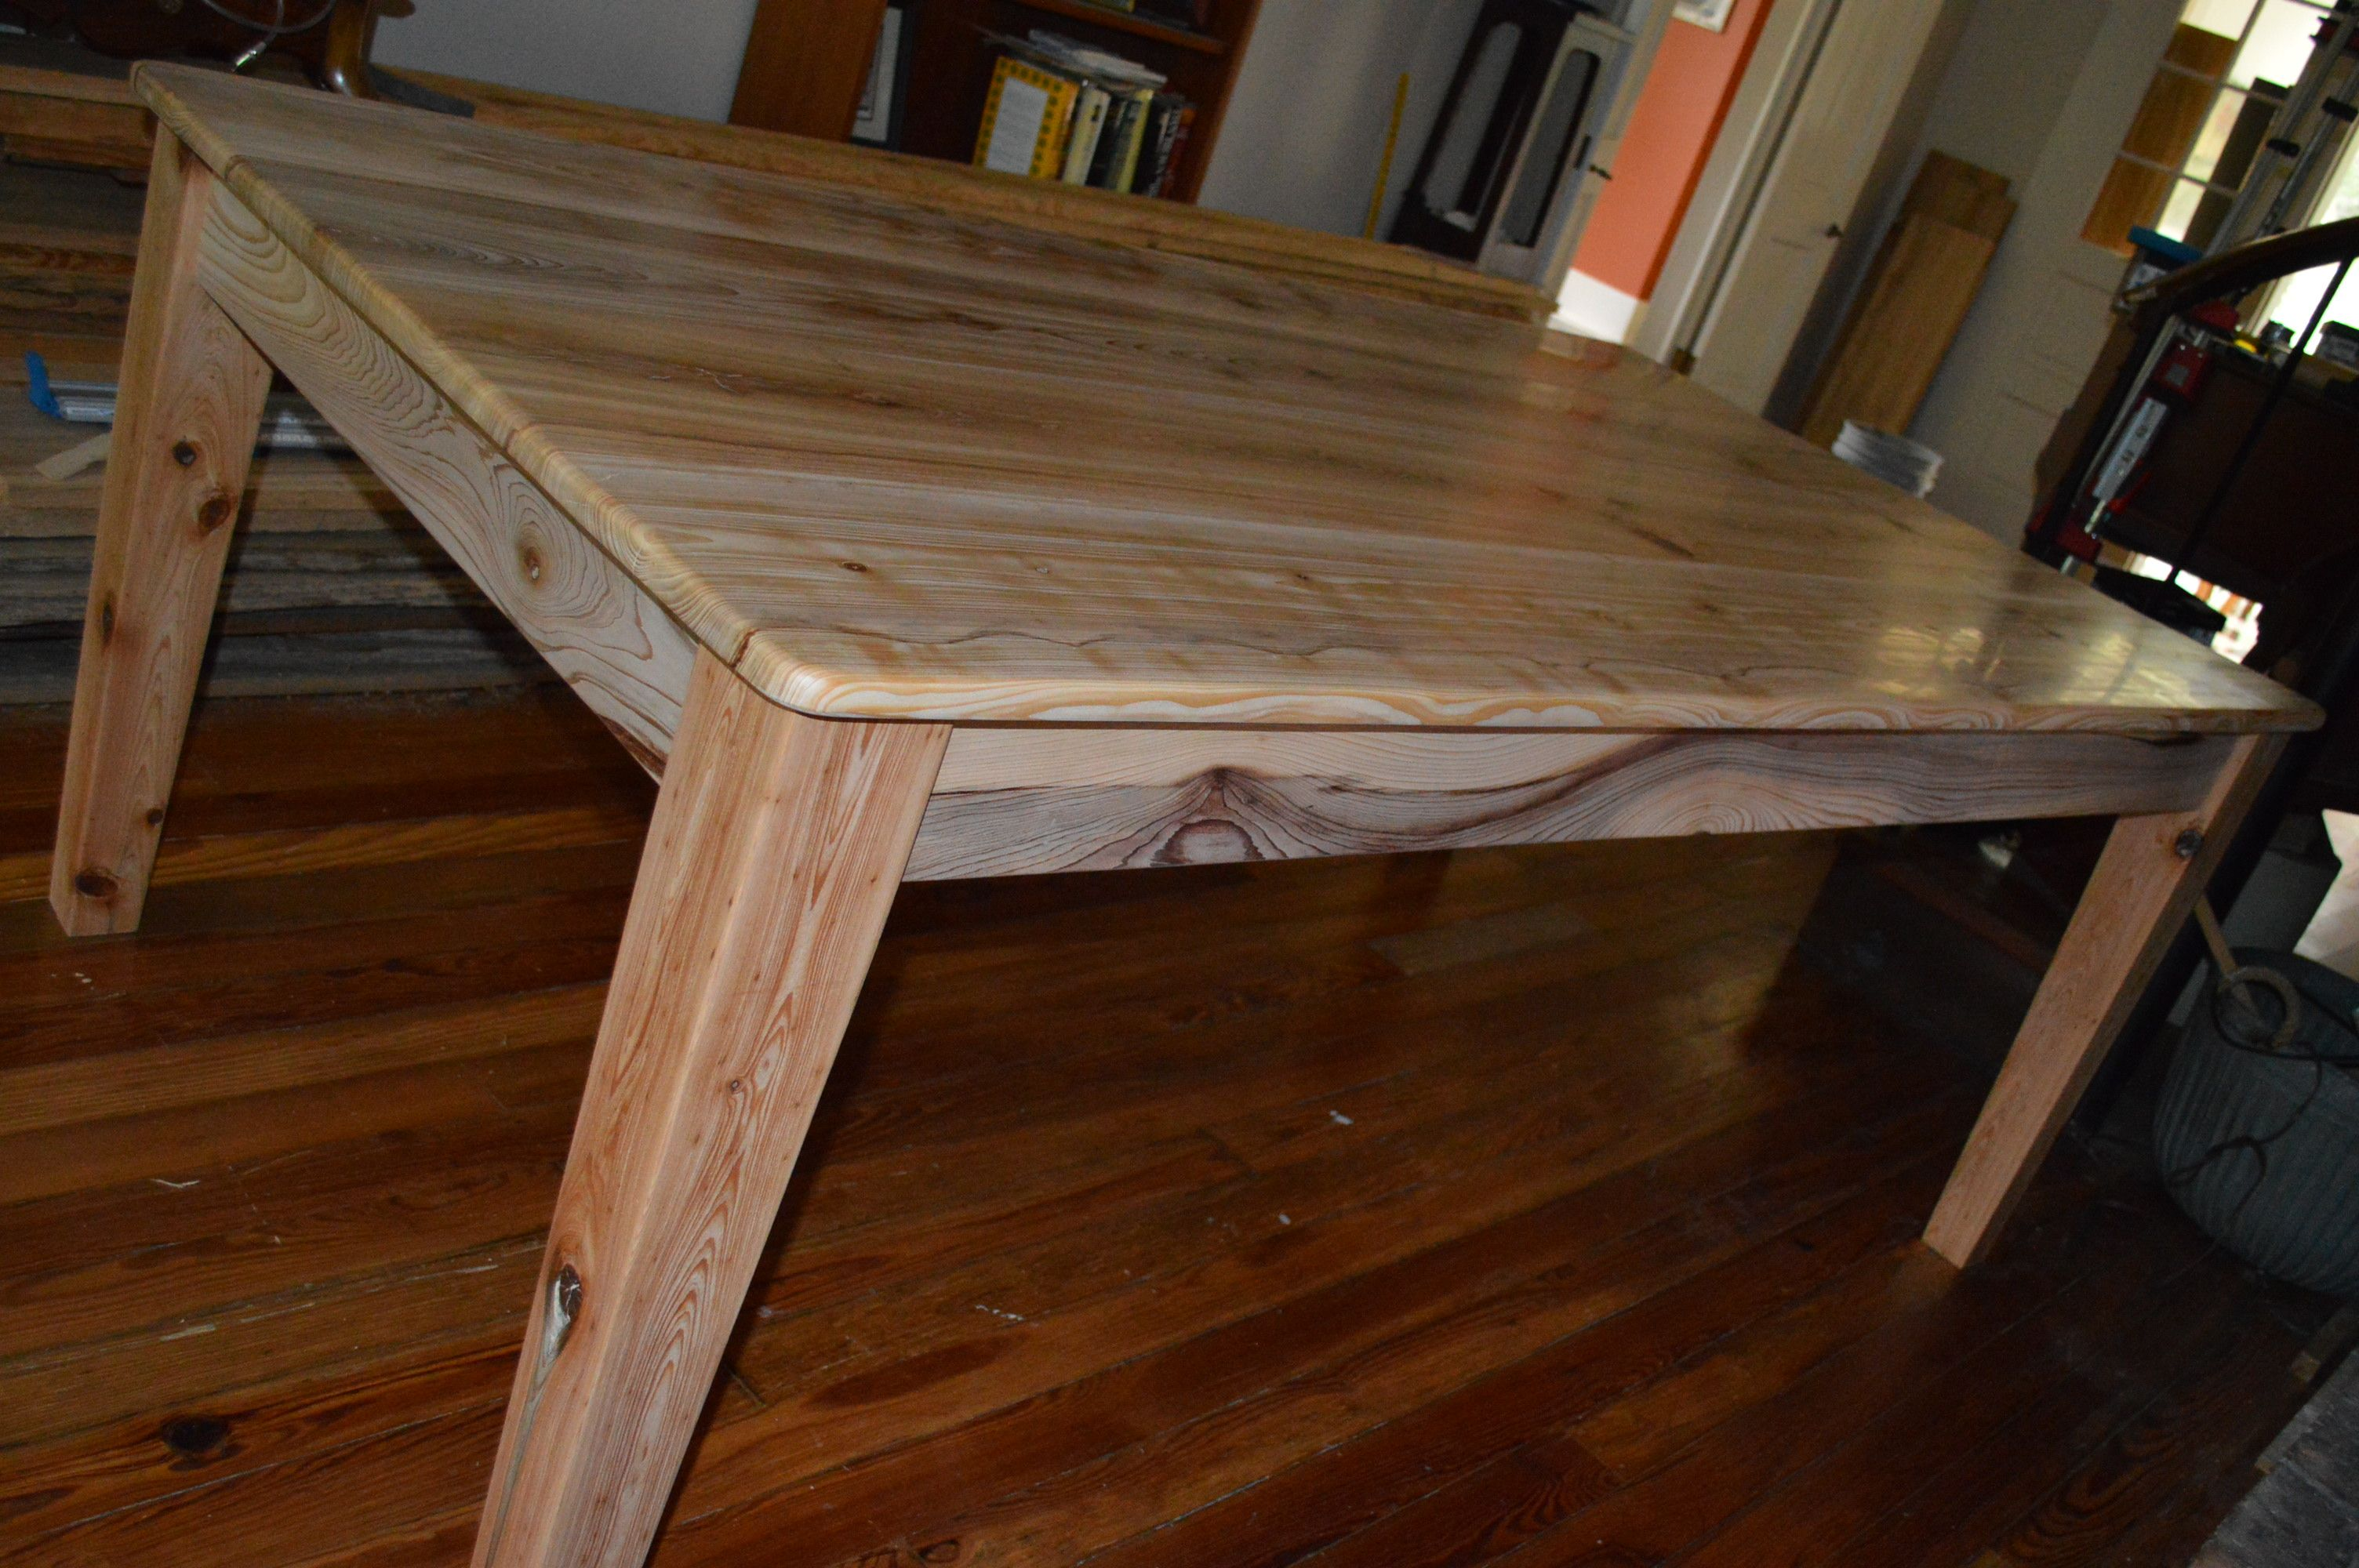 Miraculous Cypress Farm Table Bare Wood Burnished To 3000 Grit Call Don Lamtechconsult Wood Chair Design Ideas Lamtechconsultcom